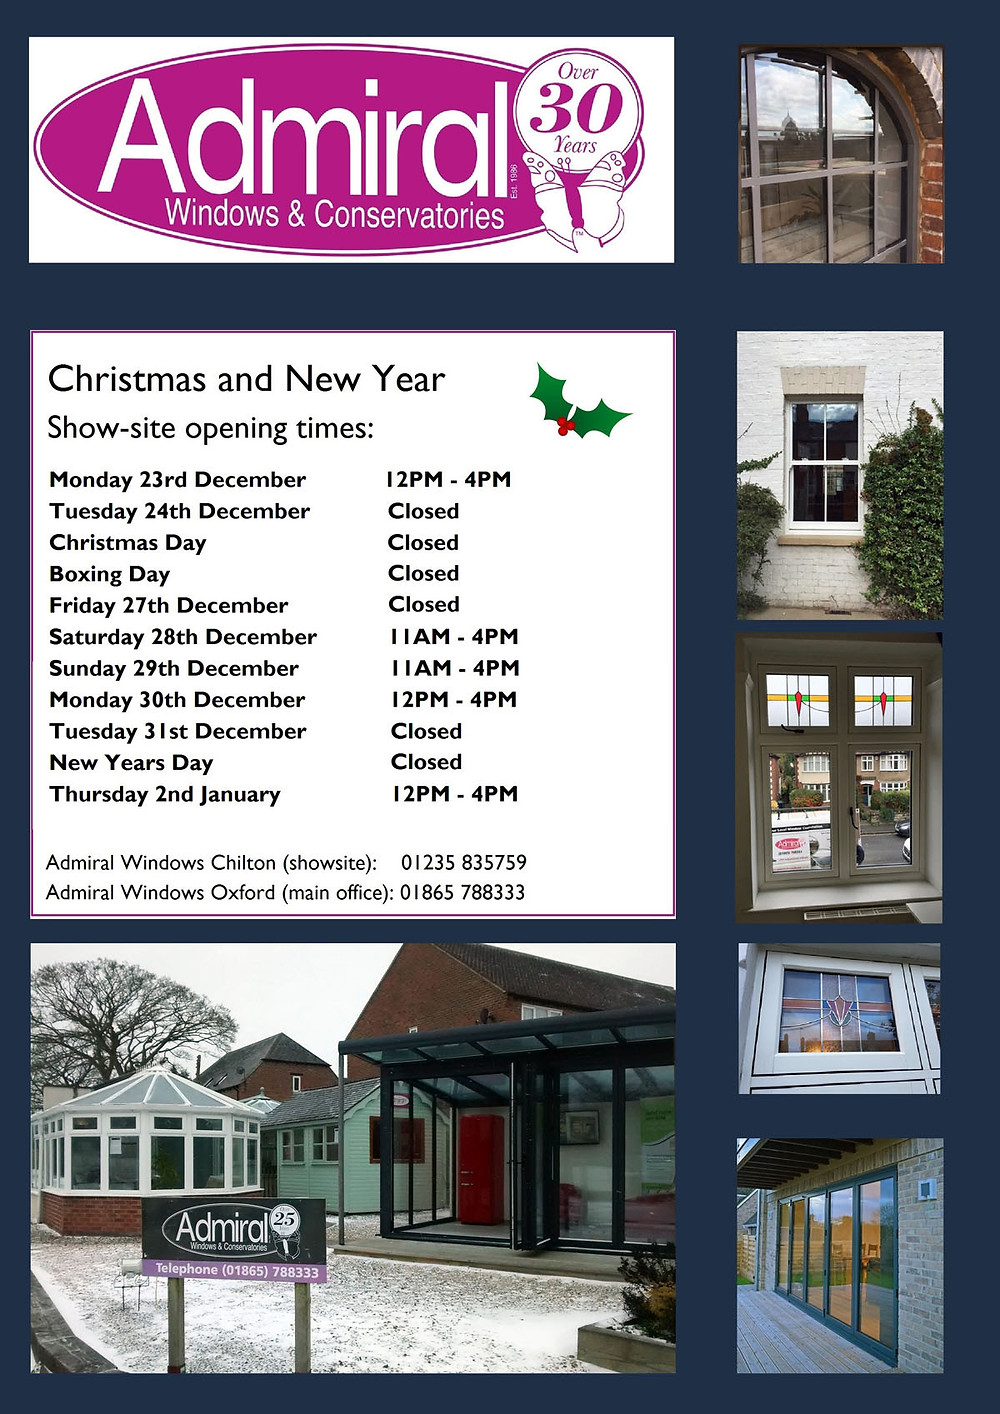 Showsite Christmas 2019 opening times 1200